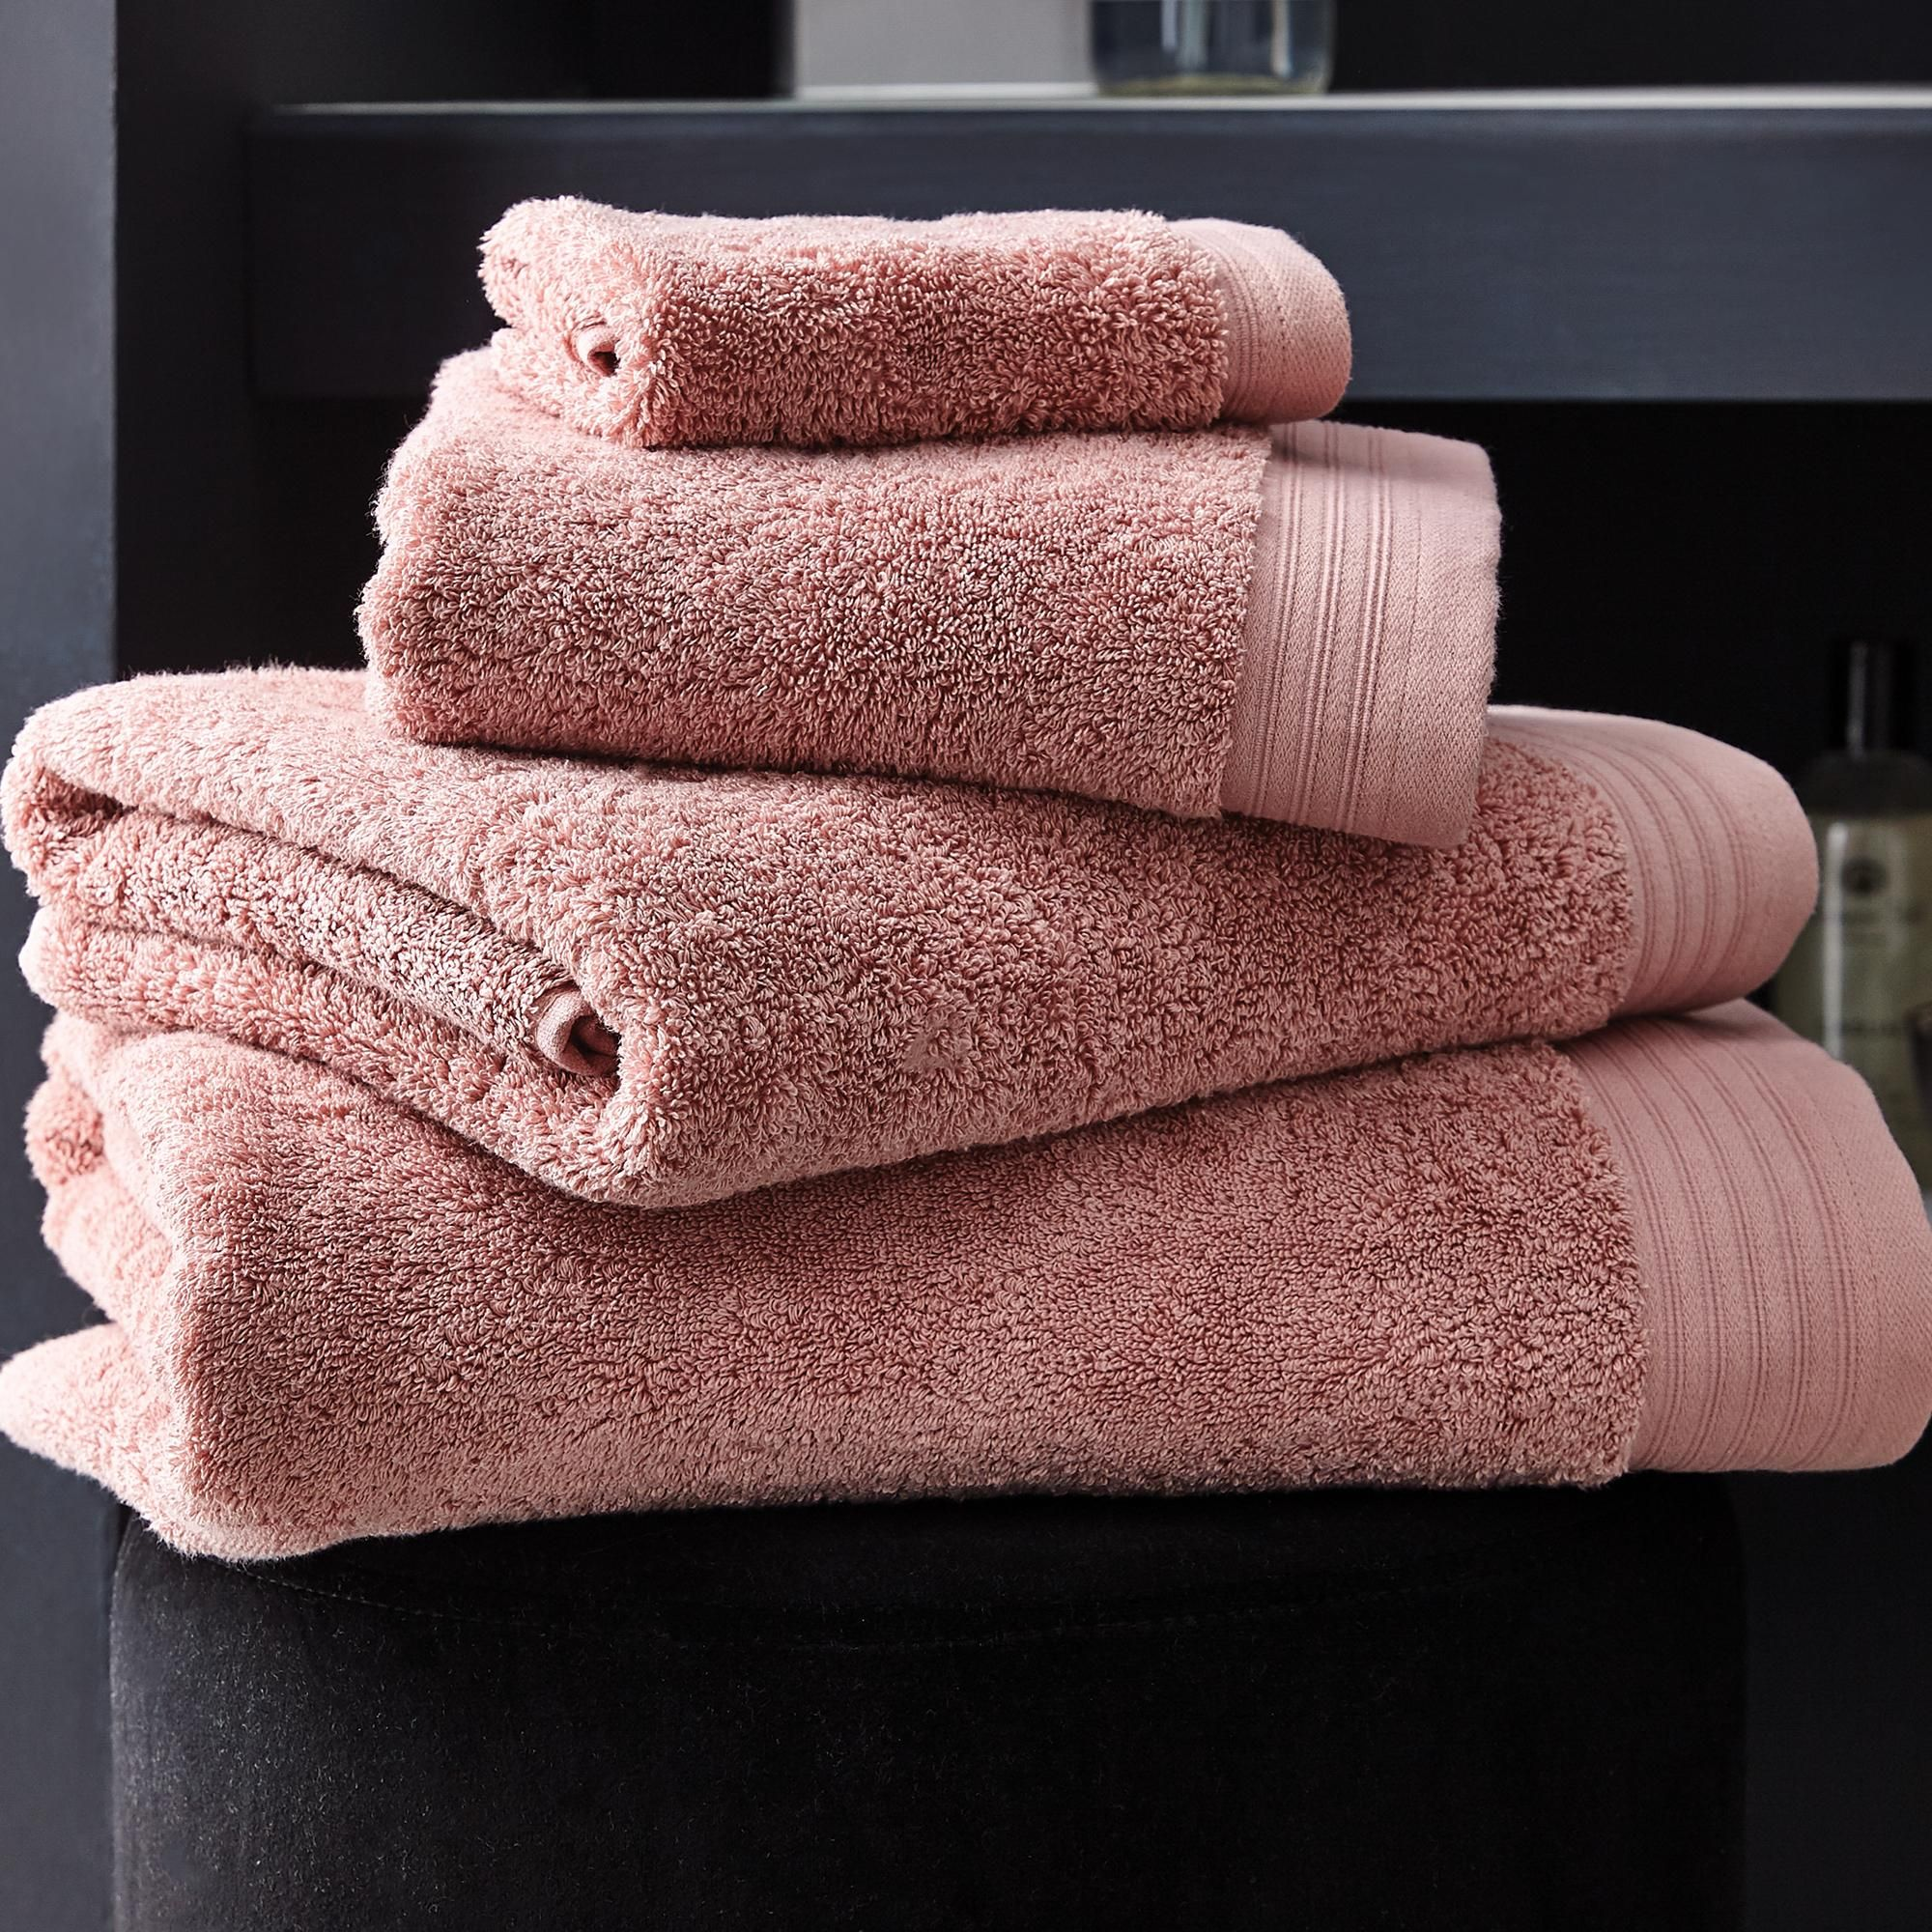 Hotel Pima Cotton Dusky Pink Towel In 2020 Pink Towels Towel